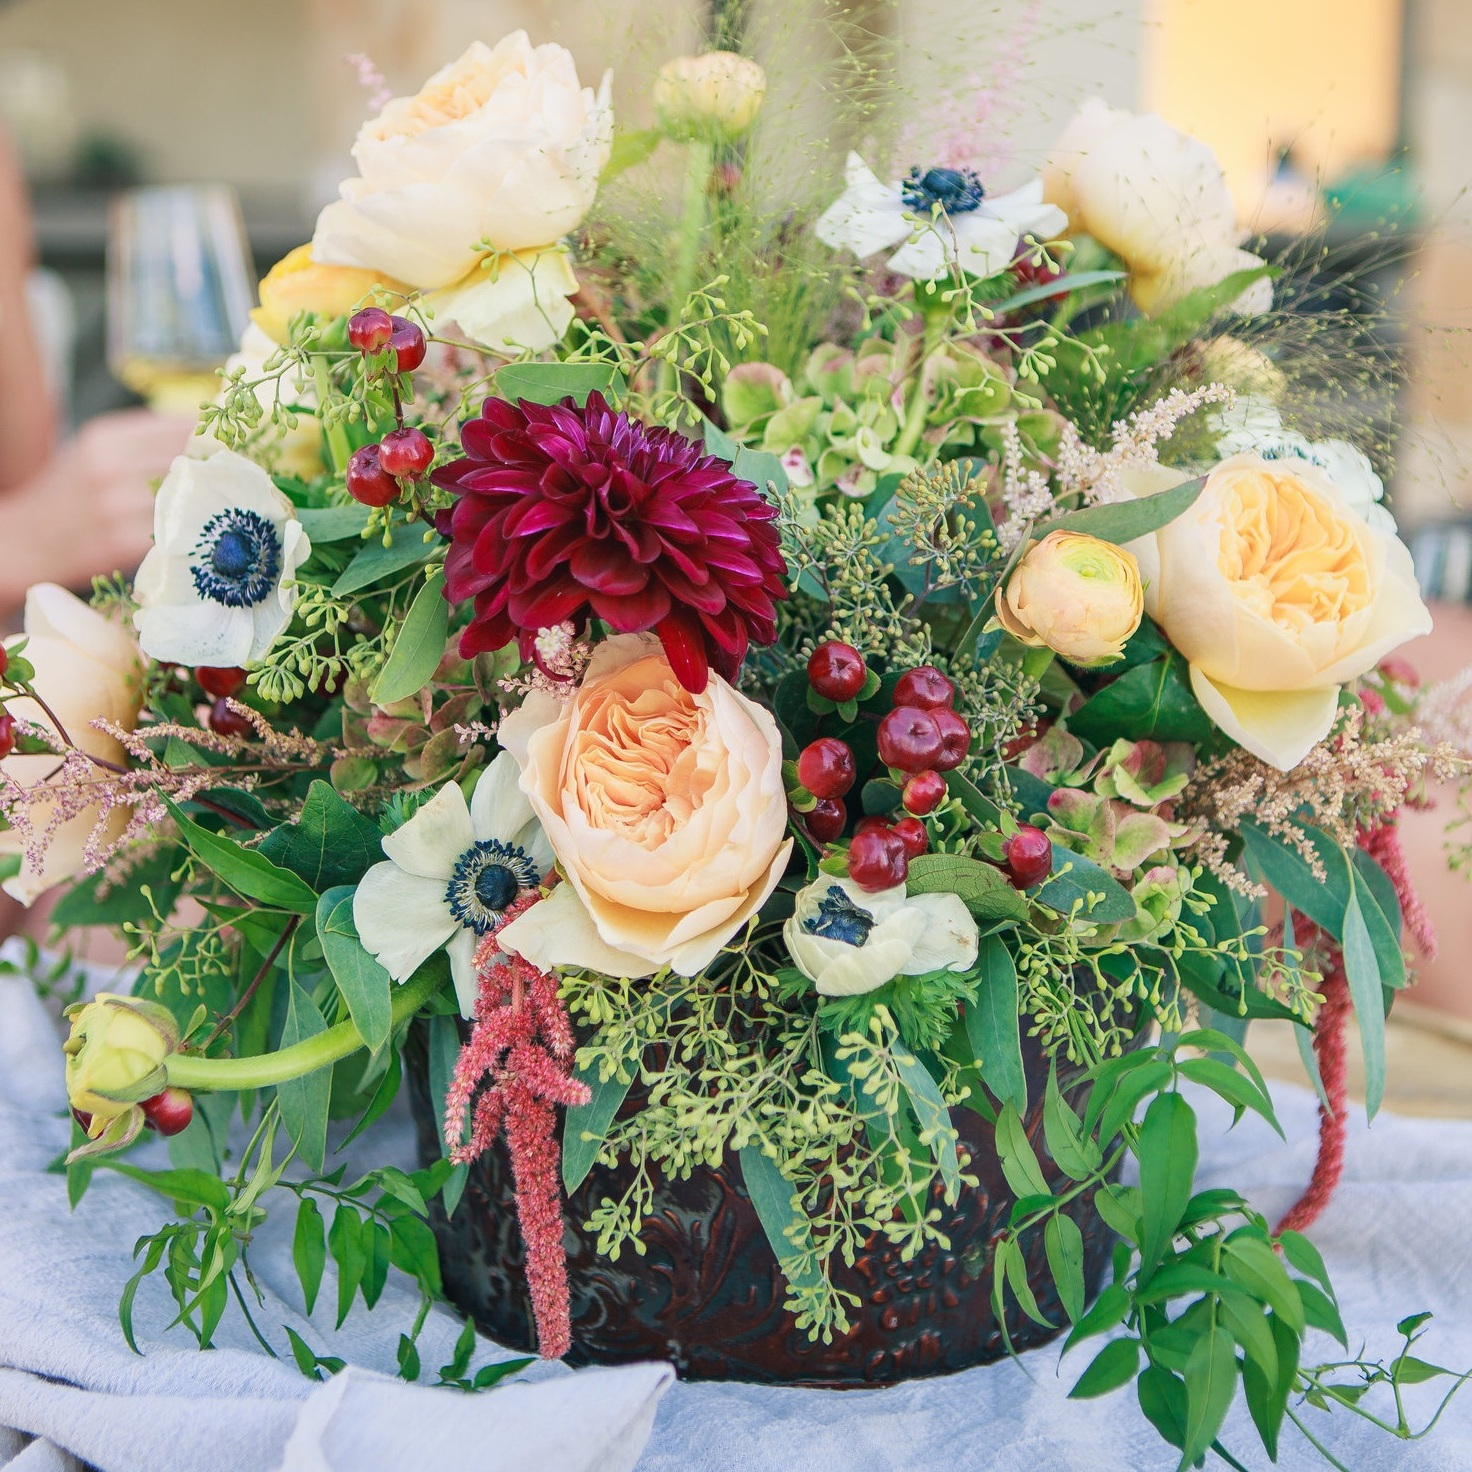 Florals - Let us personally express your message with florals. We can pick colors and floral varieties to set the mood.